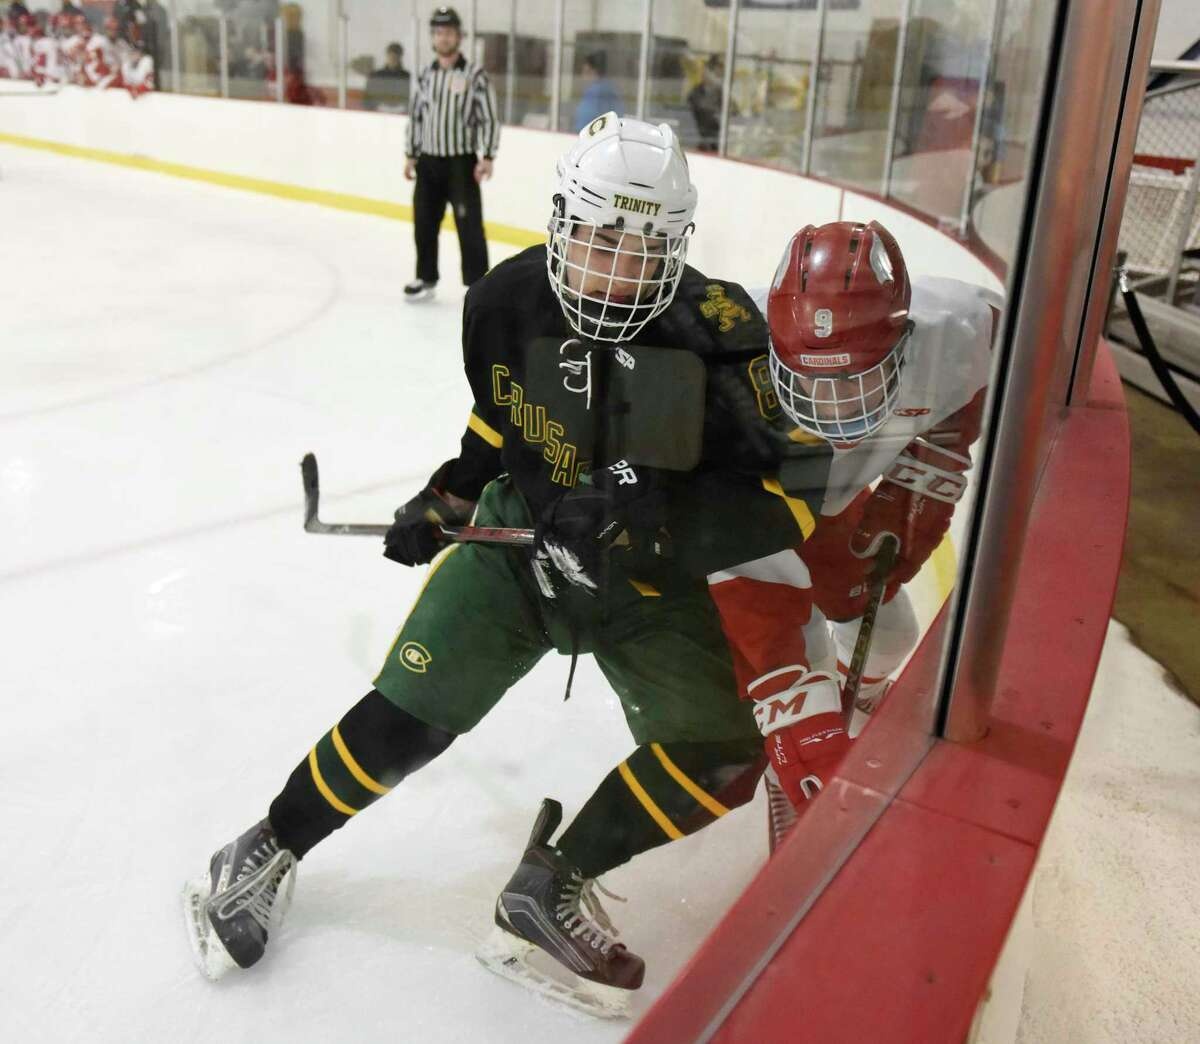 Trinity Catholic's Emmett Donoghue during a game against Greenwich in 2019.